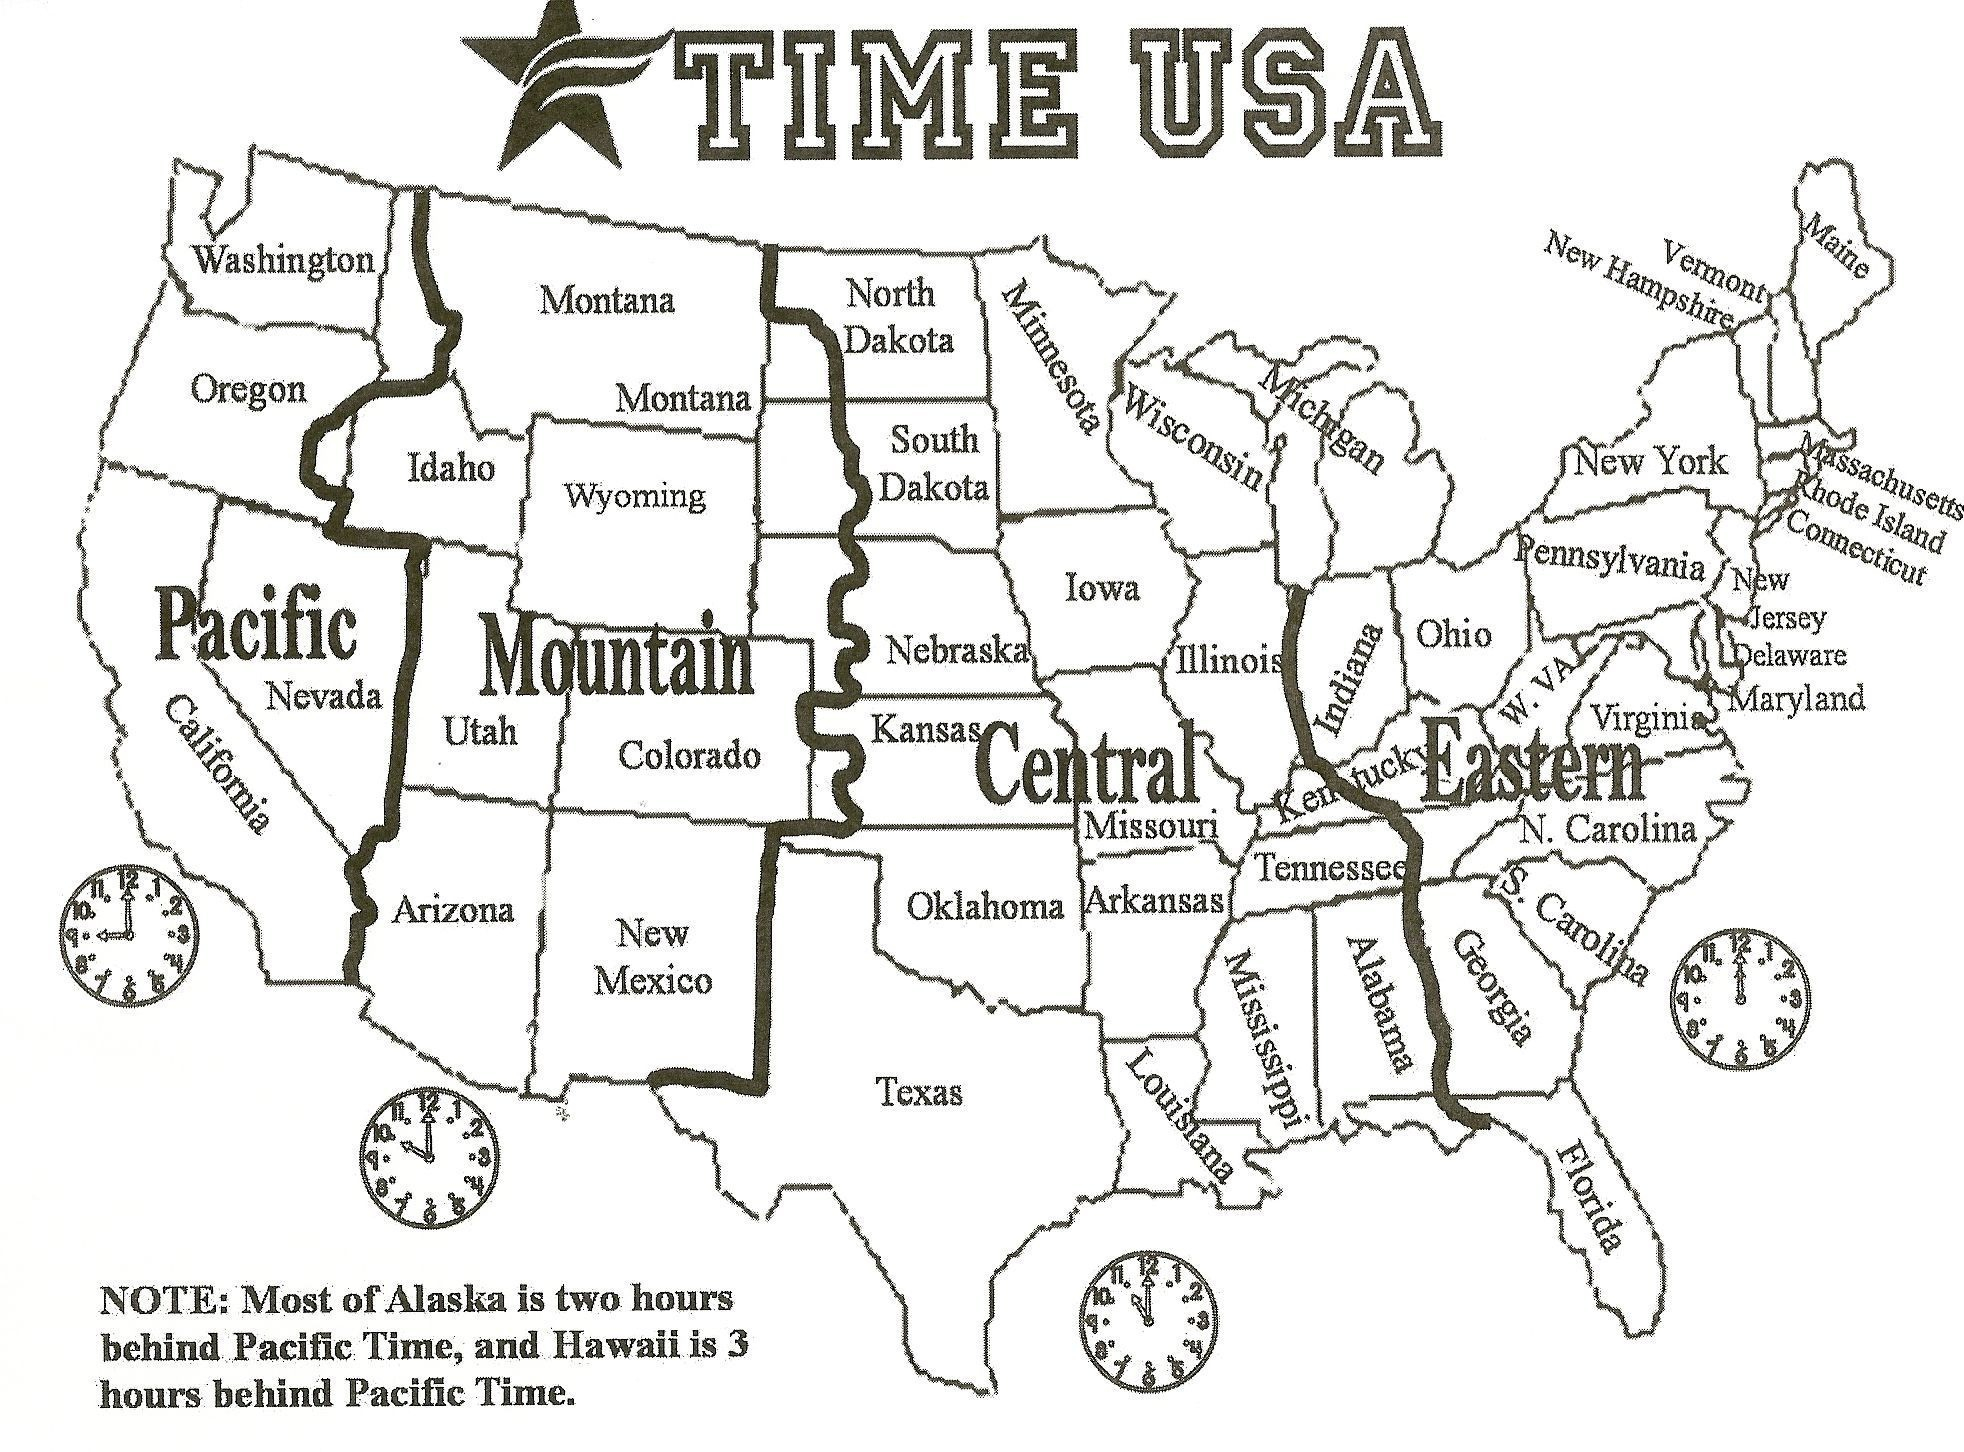 Map Of Time Zones In The Us Usa Time Zone Map Fresh Printable Map - Printable Time Zone Map Usa With States